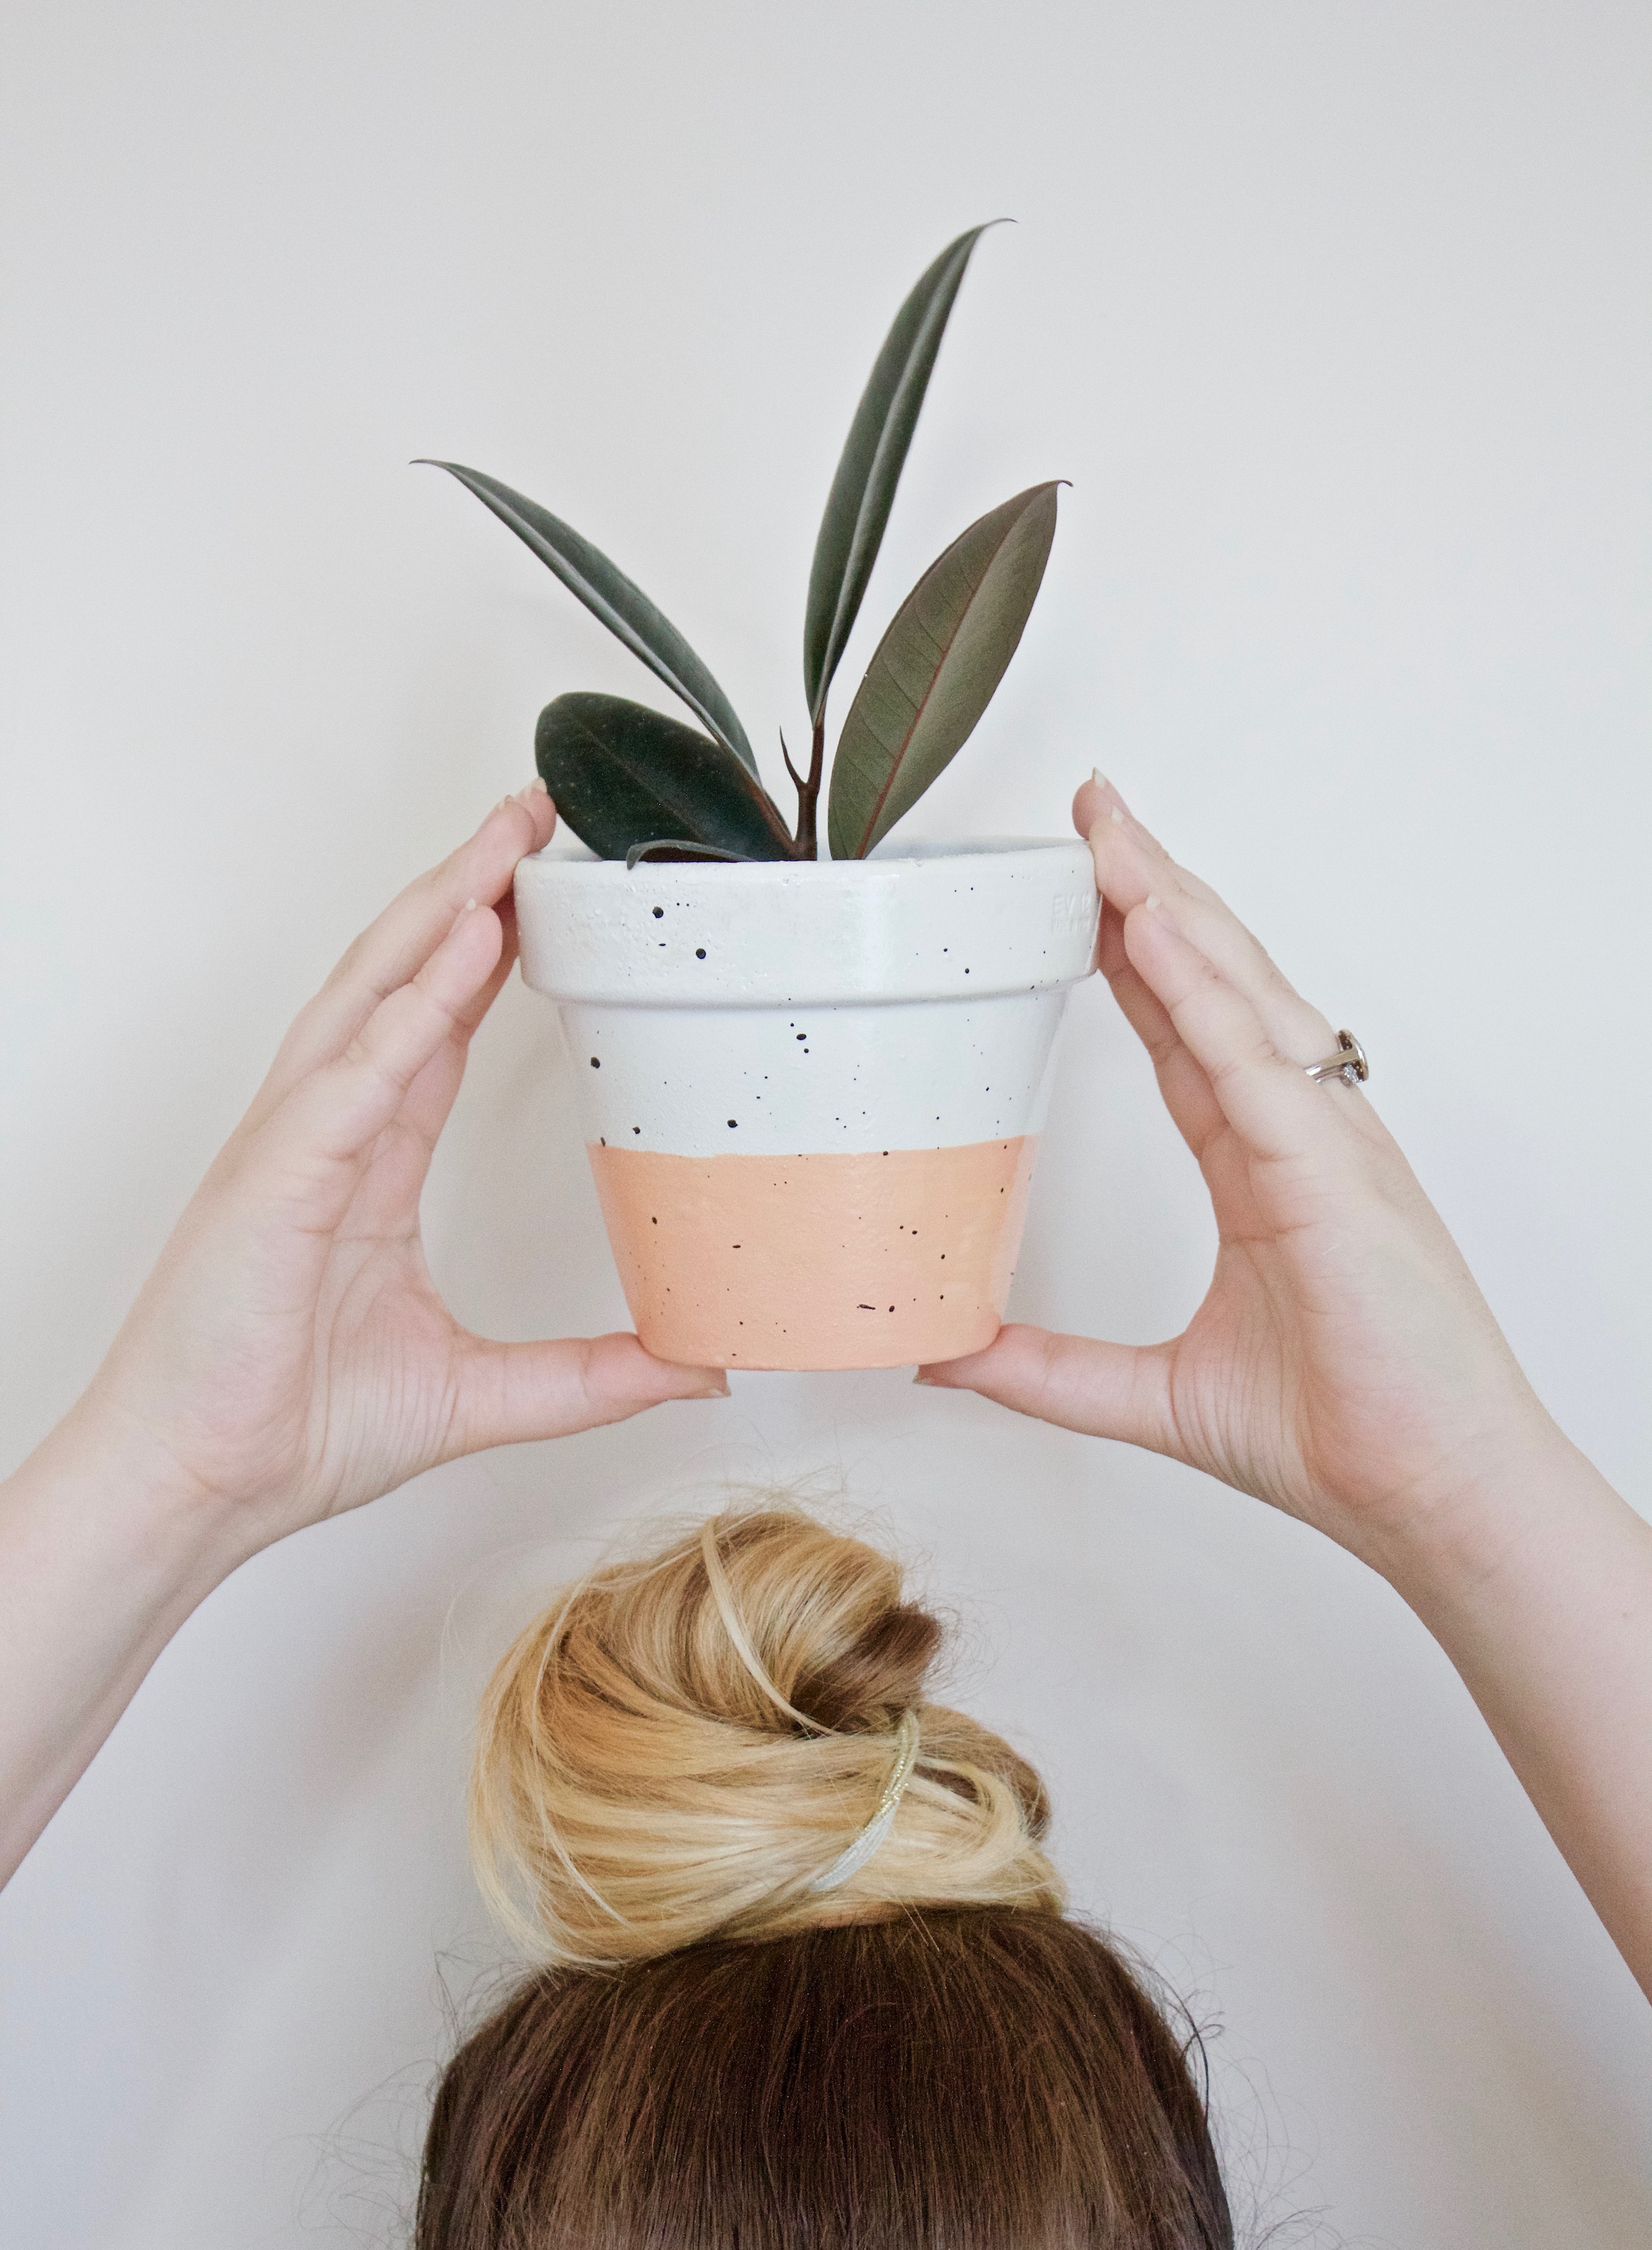 DIY wedding gifts, personalized ceramic pots